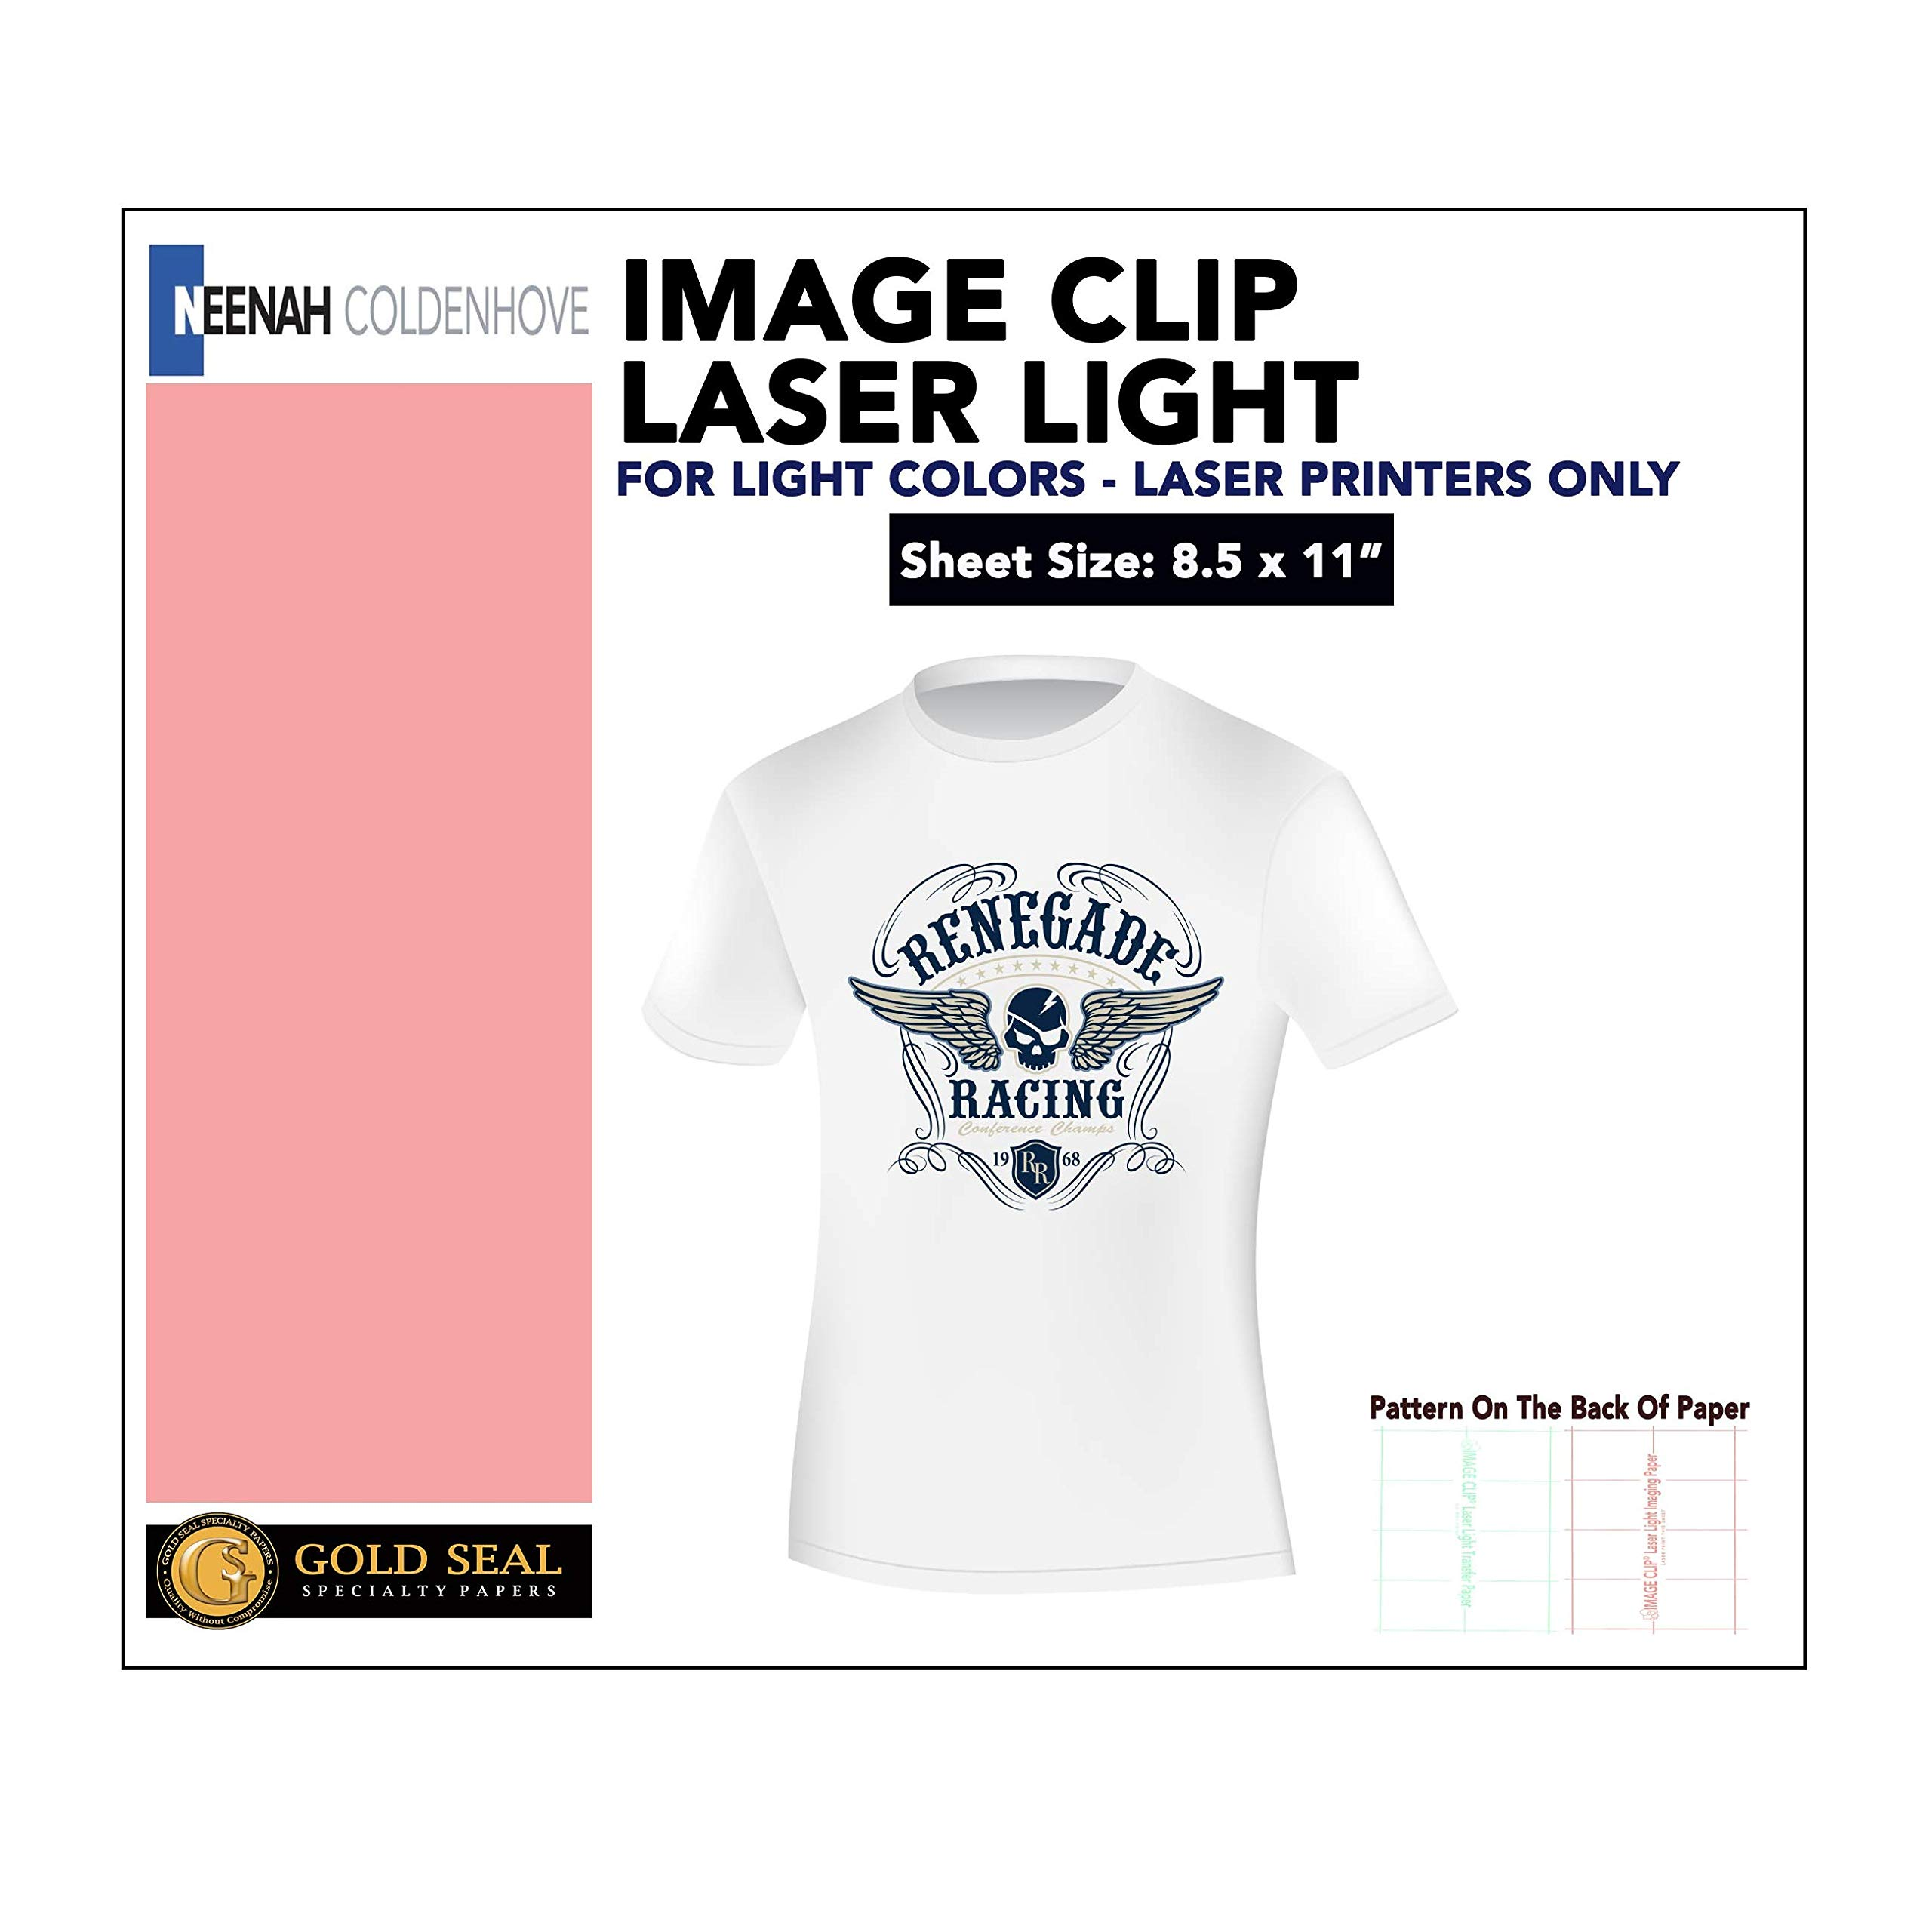 Image Clip Laser Light Self-Weeding Heat Transfer Paper 8.5 x 11-20 Sheets